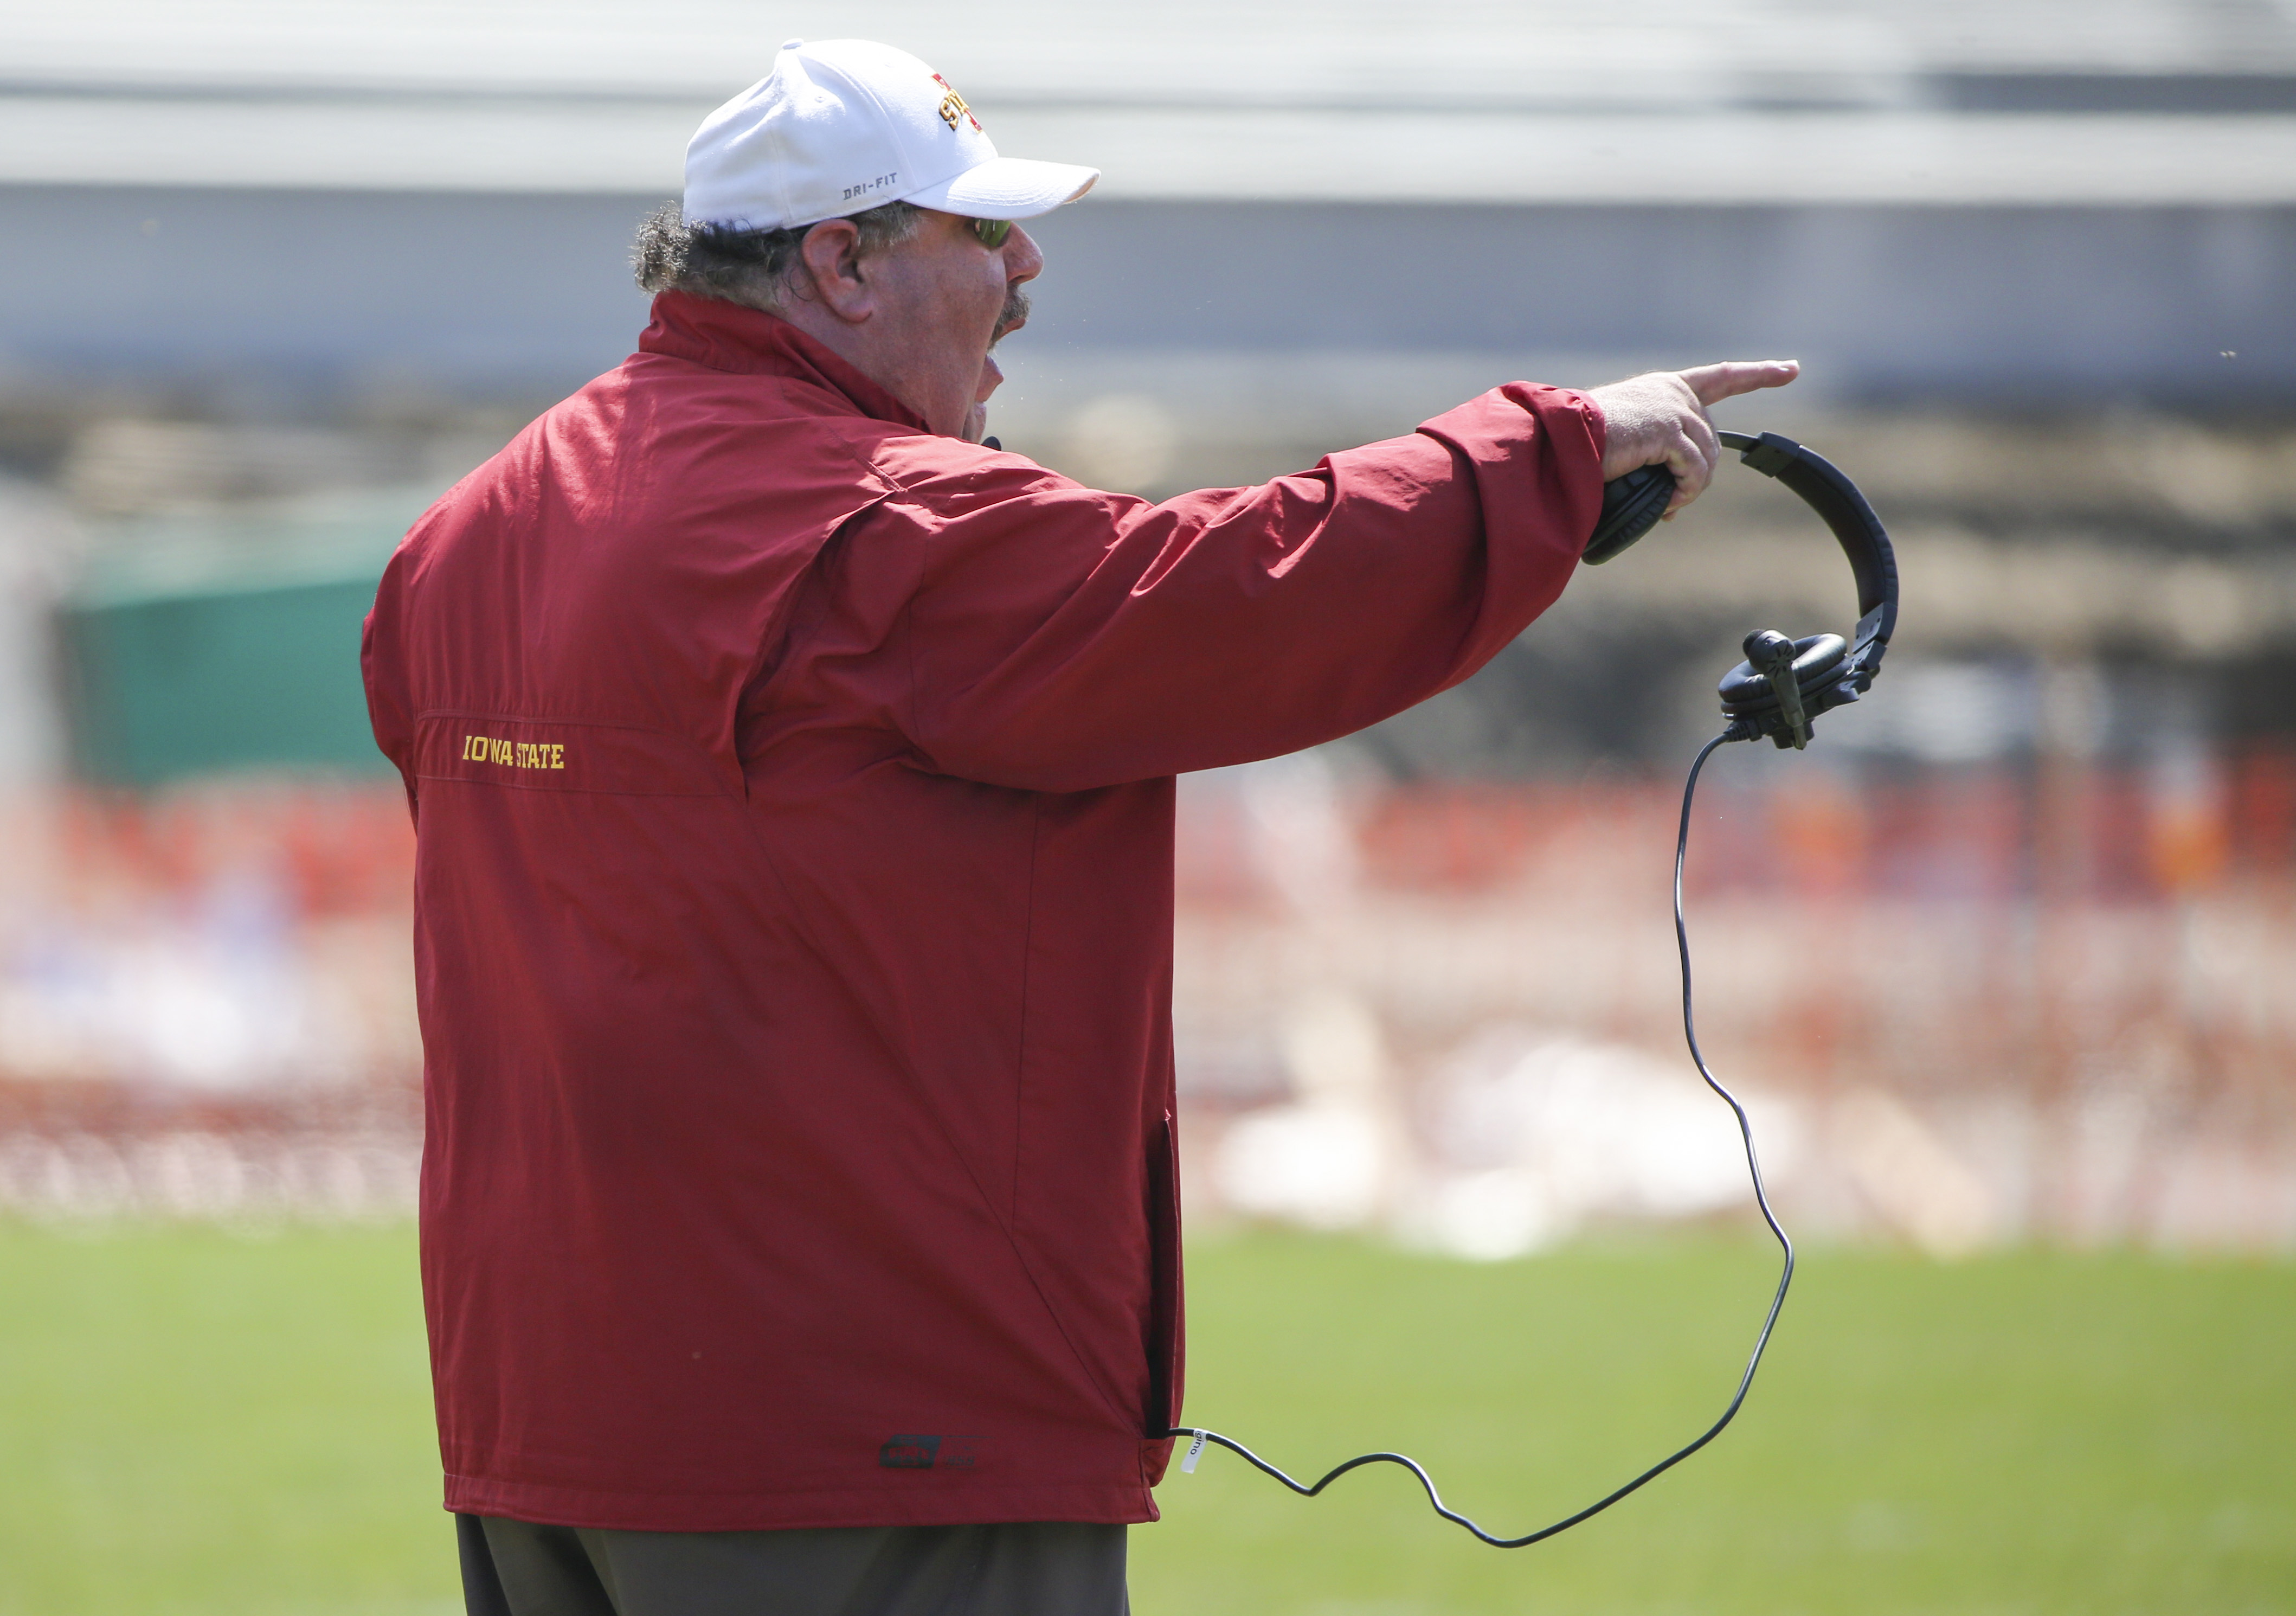 Iowa State offensive coordinator Mark Mangino yells instructions to the offense during the Iowa State spring college football game, Saturday, April 11, 2015, in Ames, Iowa. (AP Photo/Justin Hayworth)